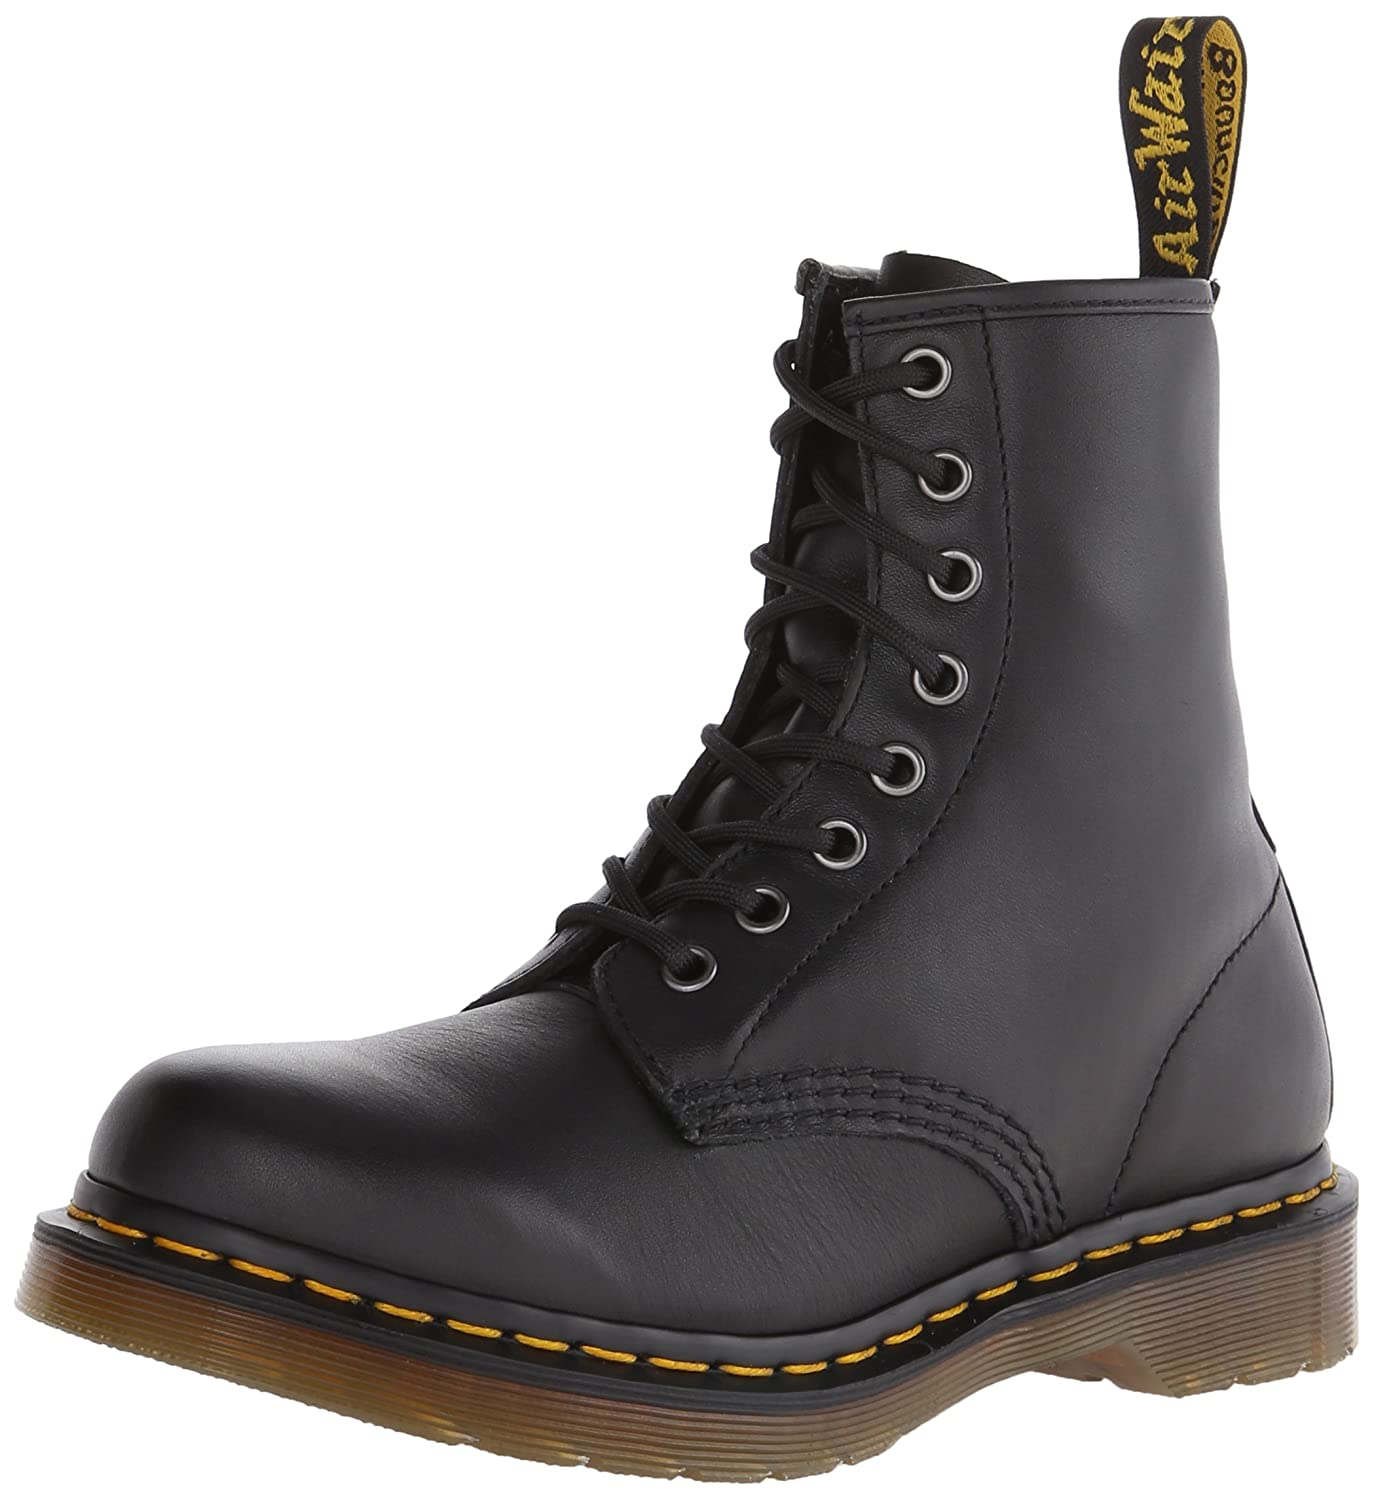 Dr. Martens Womens 1460W Originals Eight-Eye Lace-Up Boot, Black, 9 M US/7 UK Dr. Martens Footwear 1460 W DMS1460BKNP11821002_BLACK-7